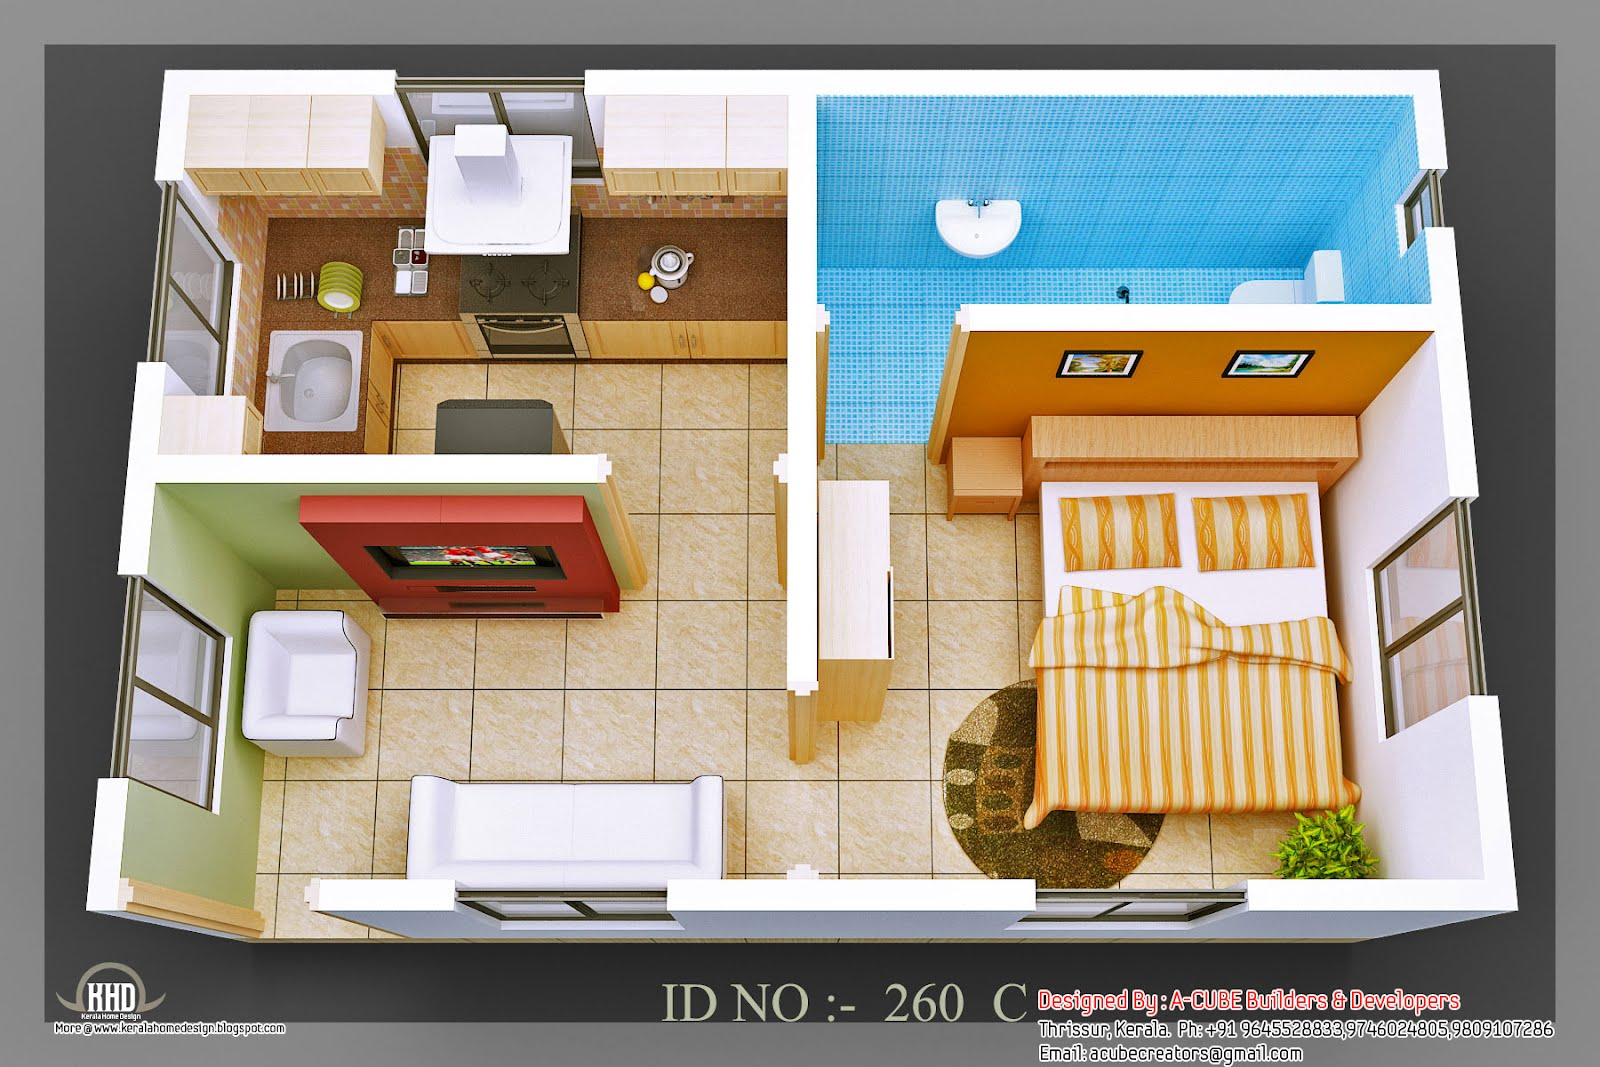 3d isometric views of small house plans kerala home design and floor plans Small house designs and floor plans